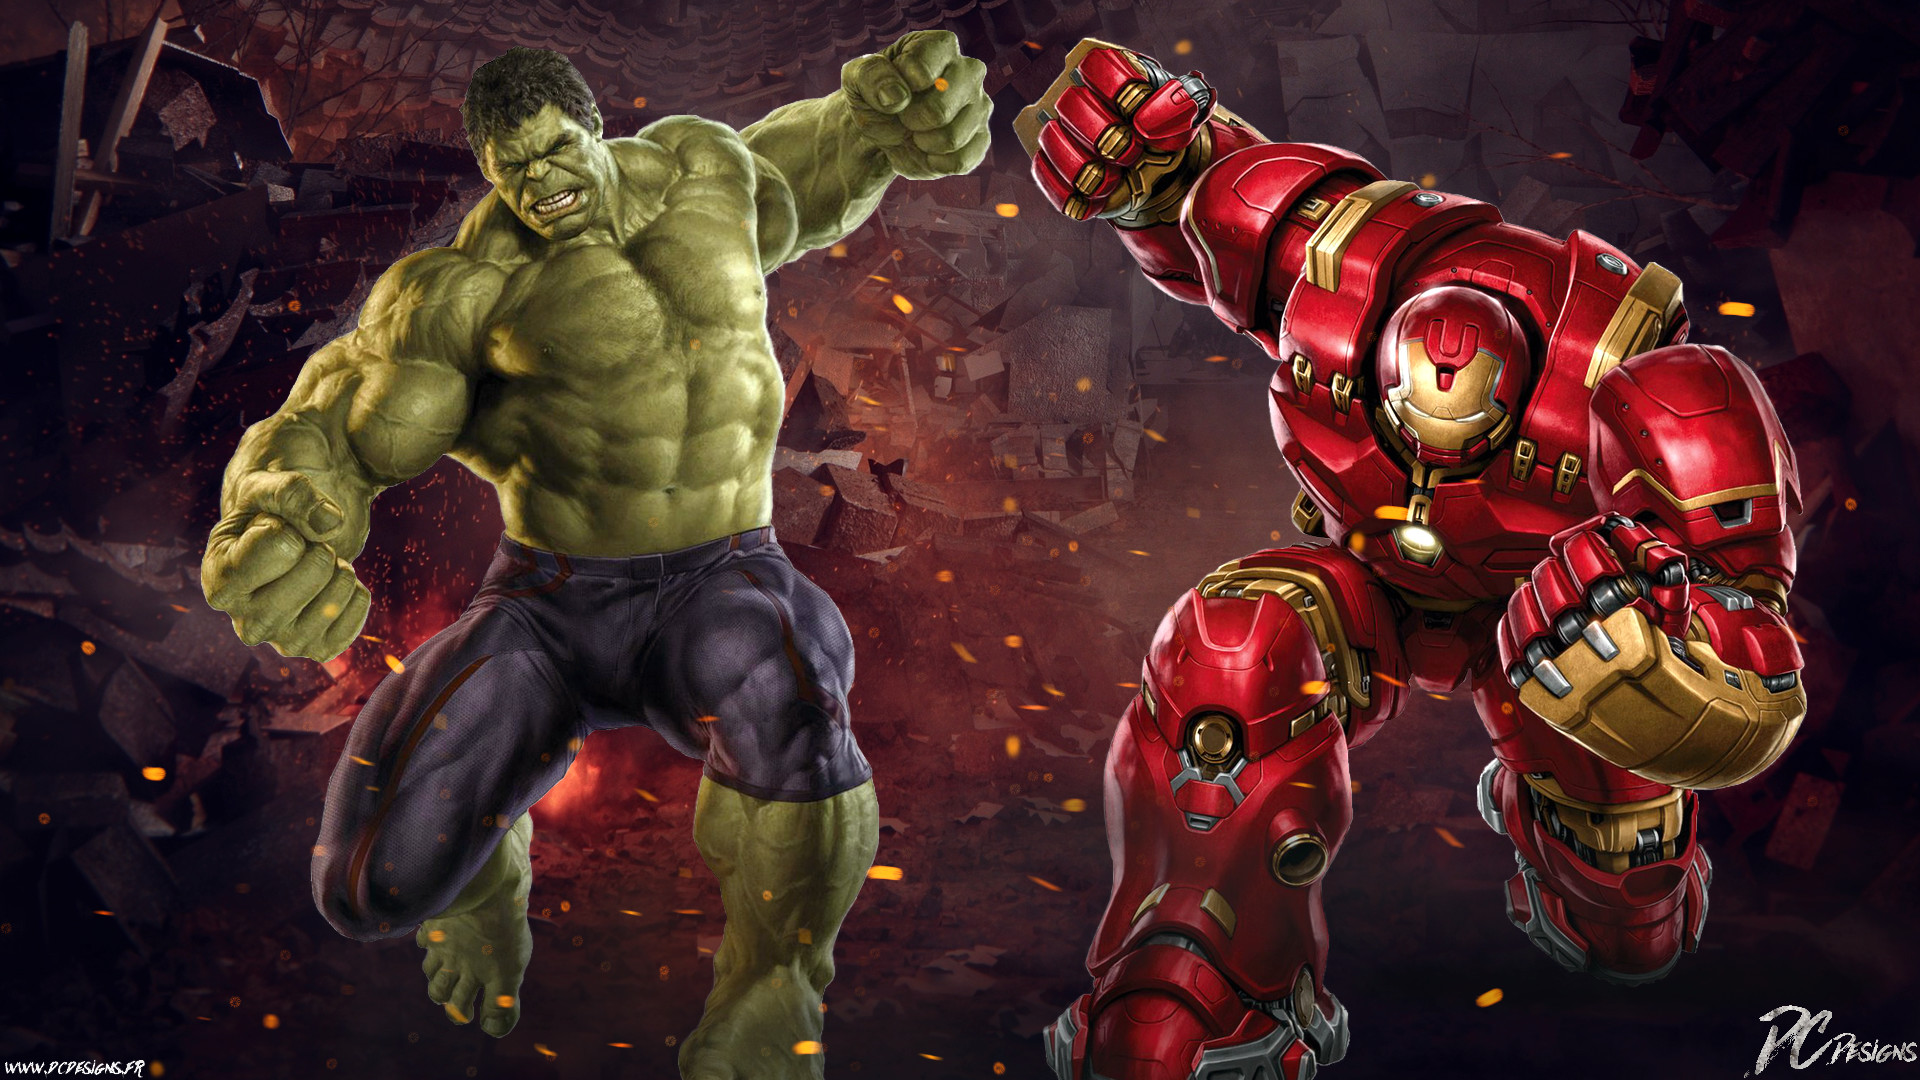 Res: 1920x1080, Movie - Avengers: Age of Ultron Hulk Vs Hulkbuster Hulk Wallpaper